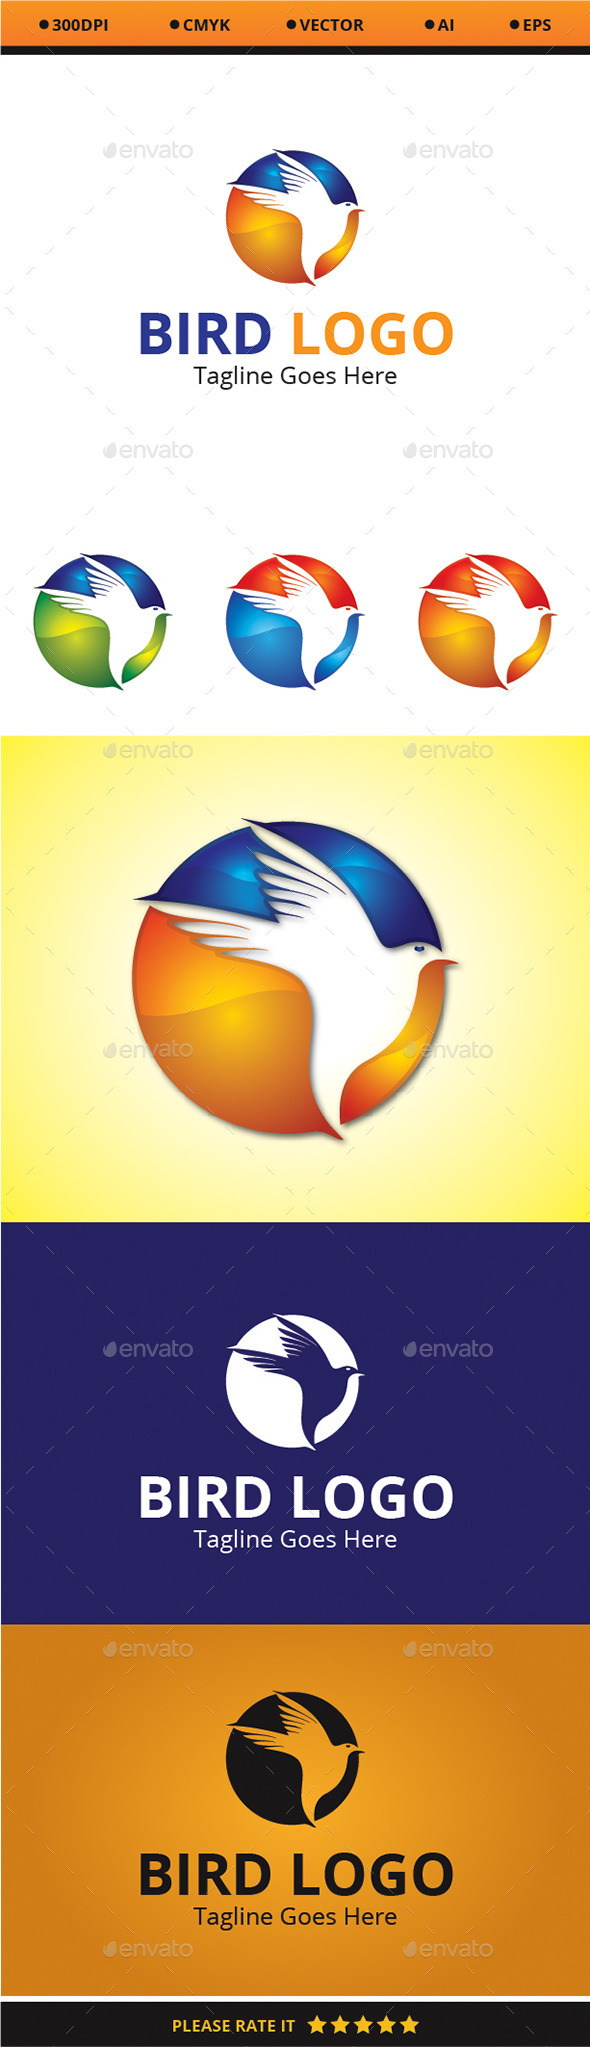 GraphicRiver Bird Logo 9475704